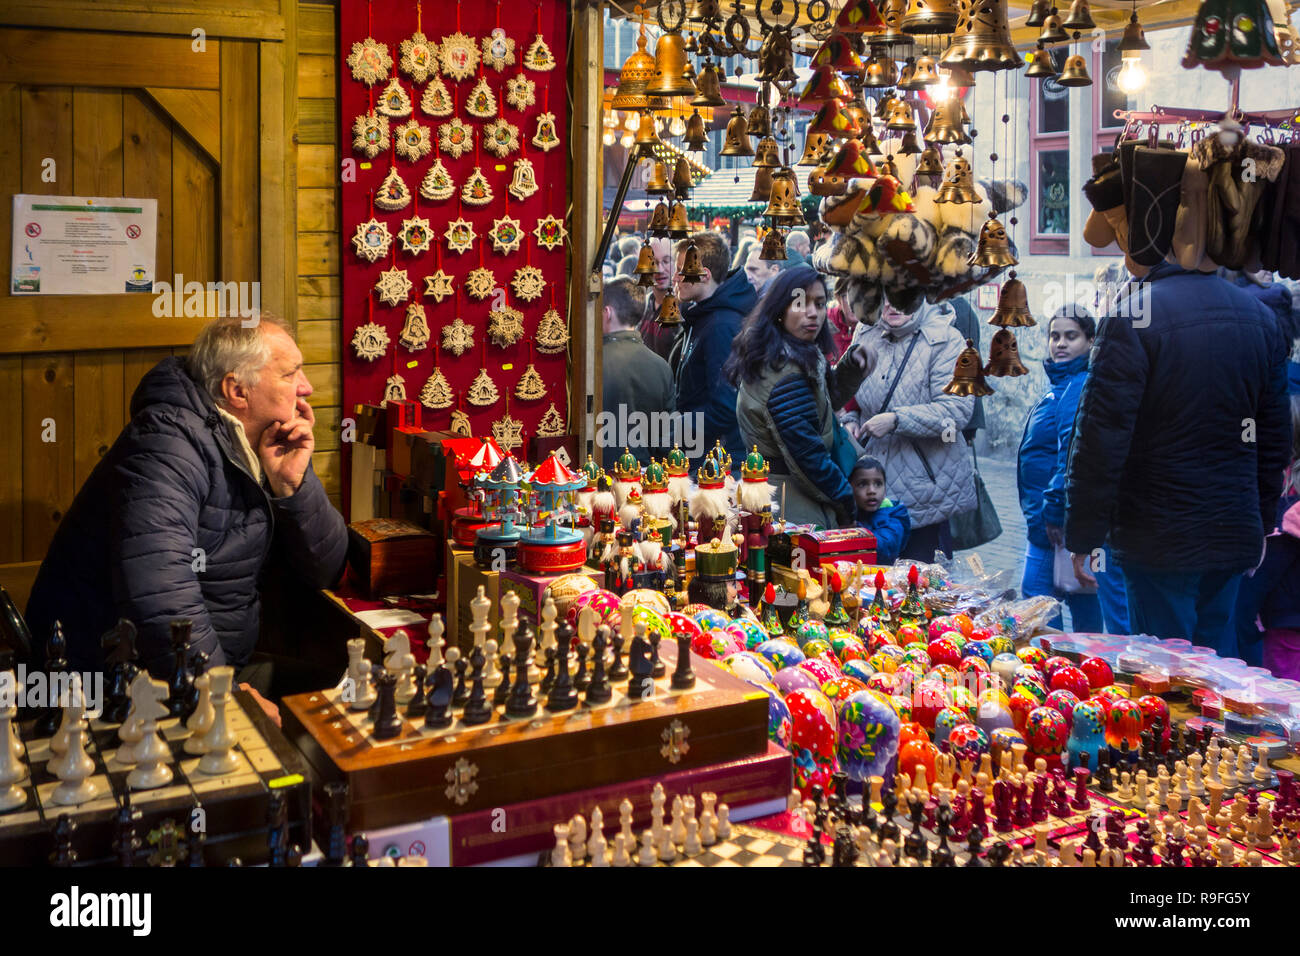 Street vendor in booth selling Xmas presents at Christmas market in winter in the city Ghent, Flanders, Belgium - Stock Image